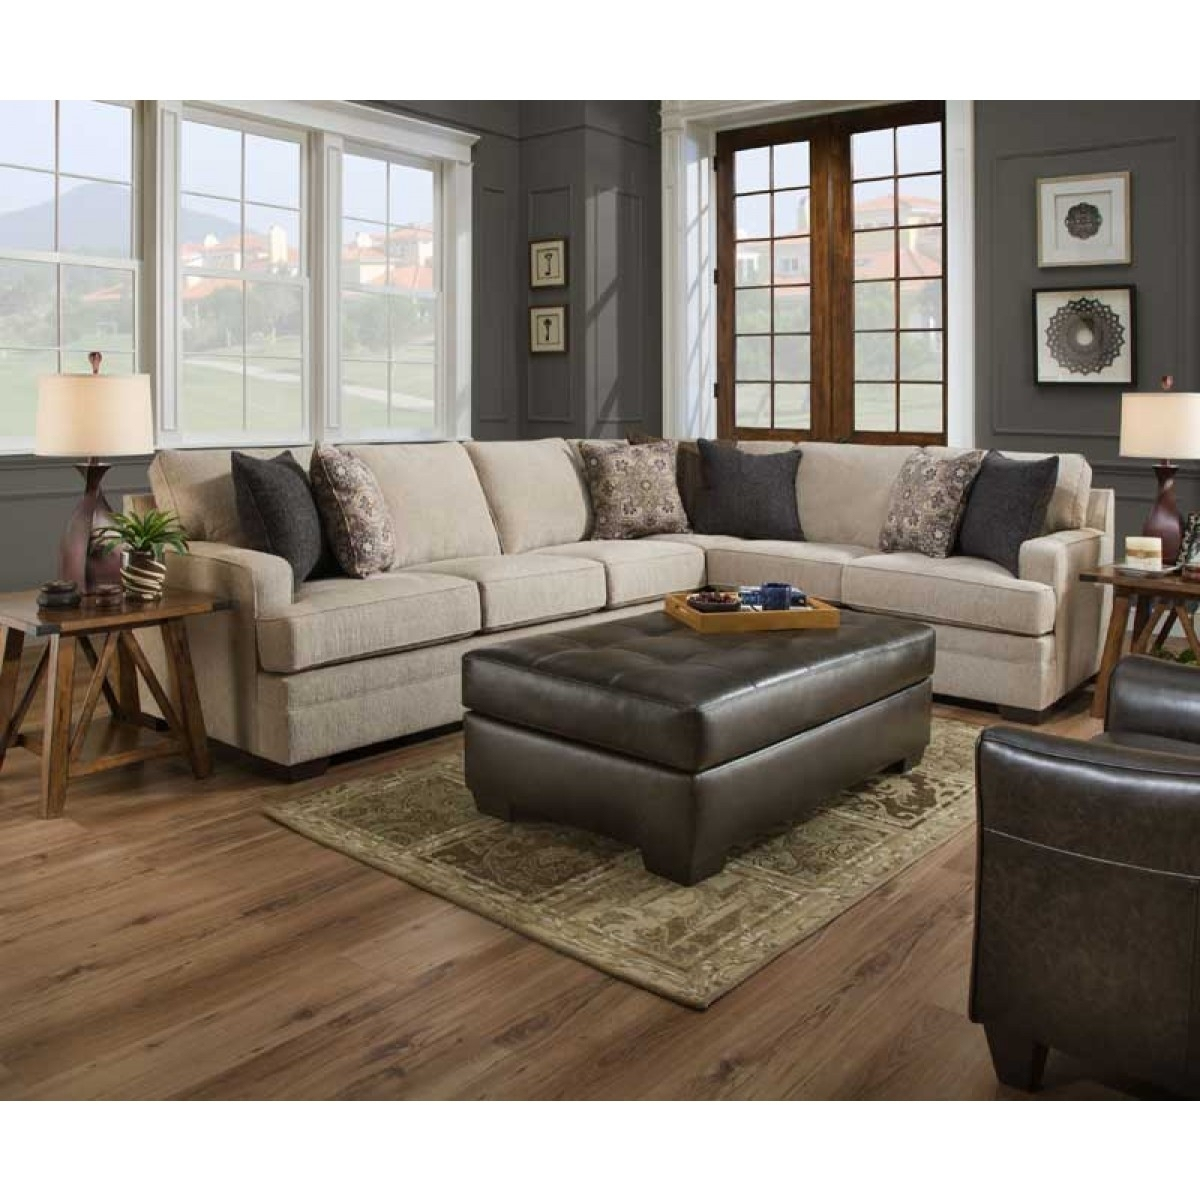 Simmons Upholstery - Macy Sand 2 Piece Sectional - 9165Br-03L-03Rb intended for Harper Foam 3 Piece Sectionals With Raf Chaise (Image 26 of 30)